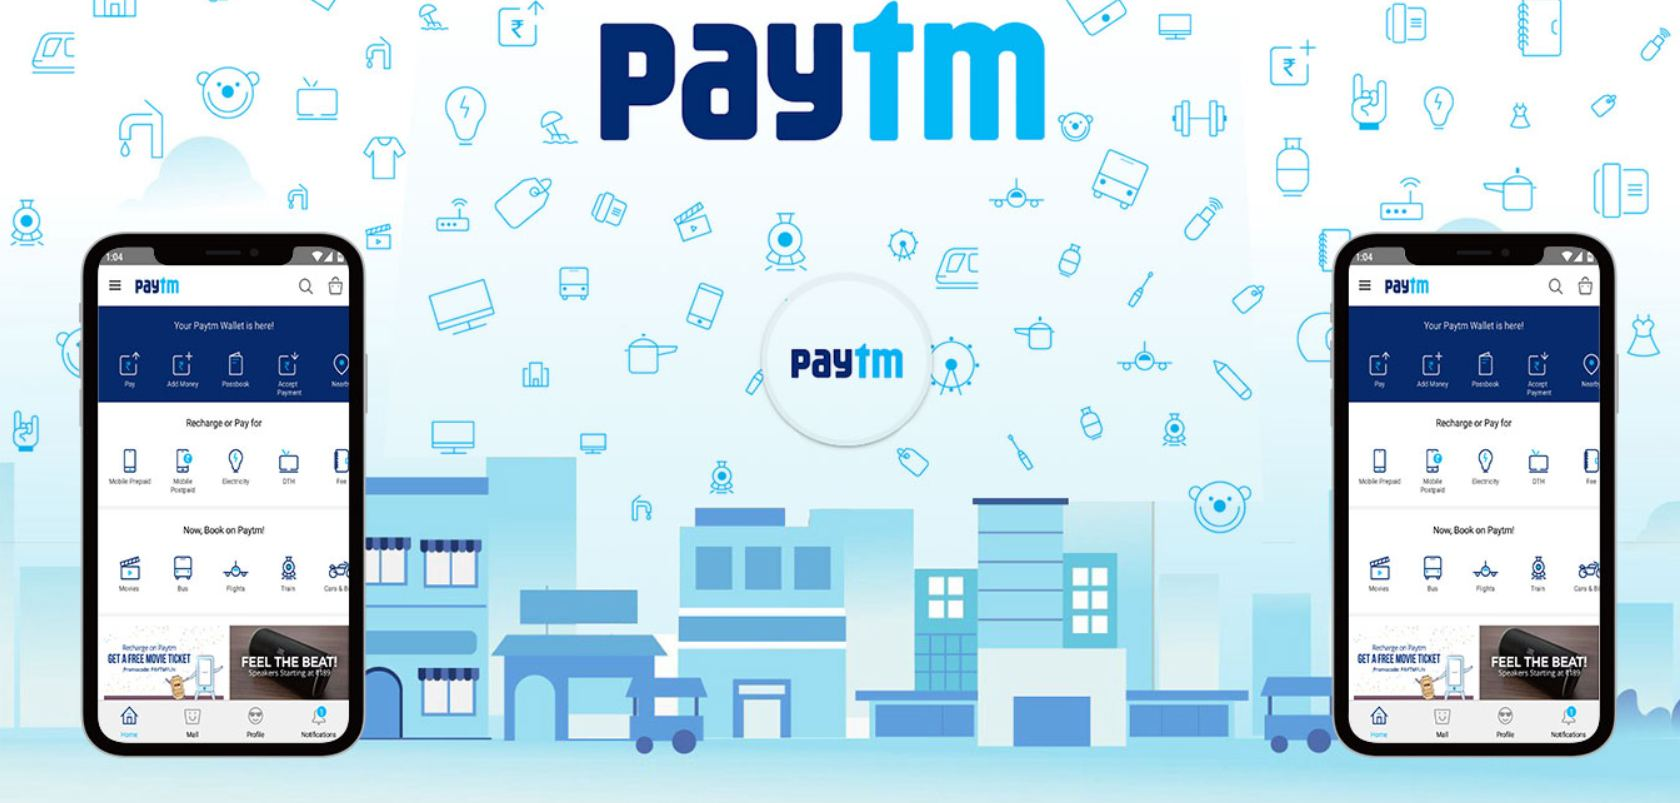 Paytm QR Code: How to share my Paytm QR code